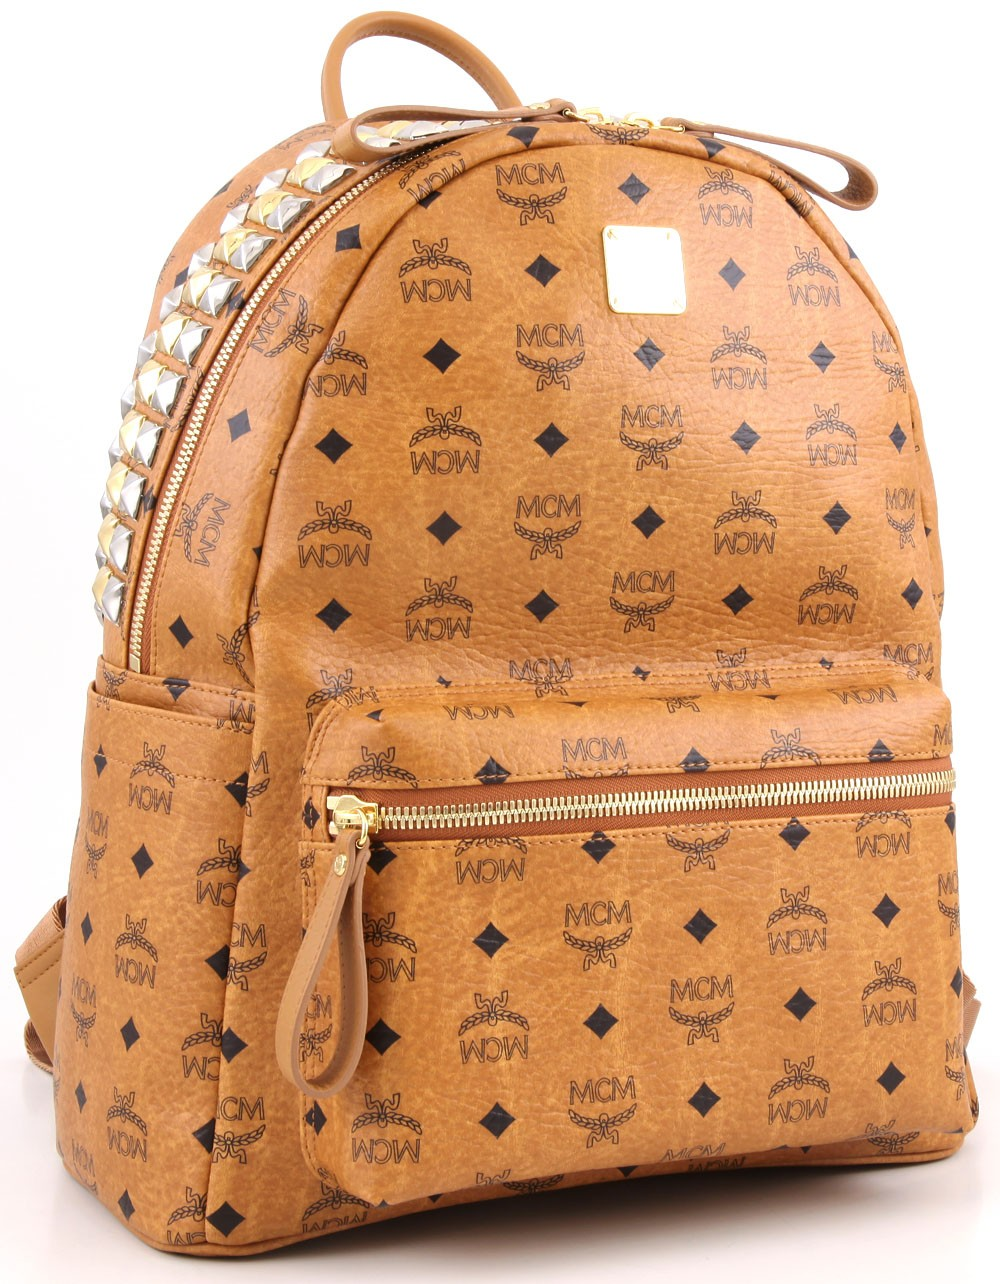 Mcm stark backpack cognac 40 cm mwk2sve12co001 for What does mcm the designer stand for